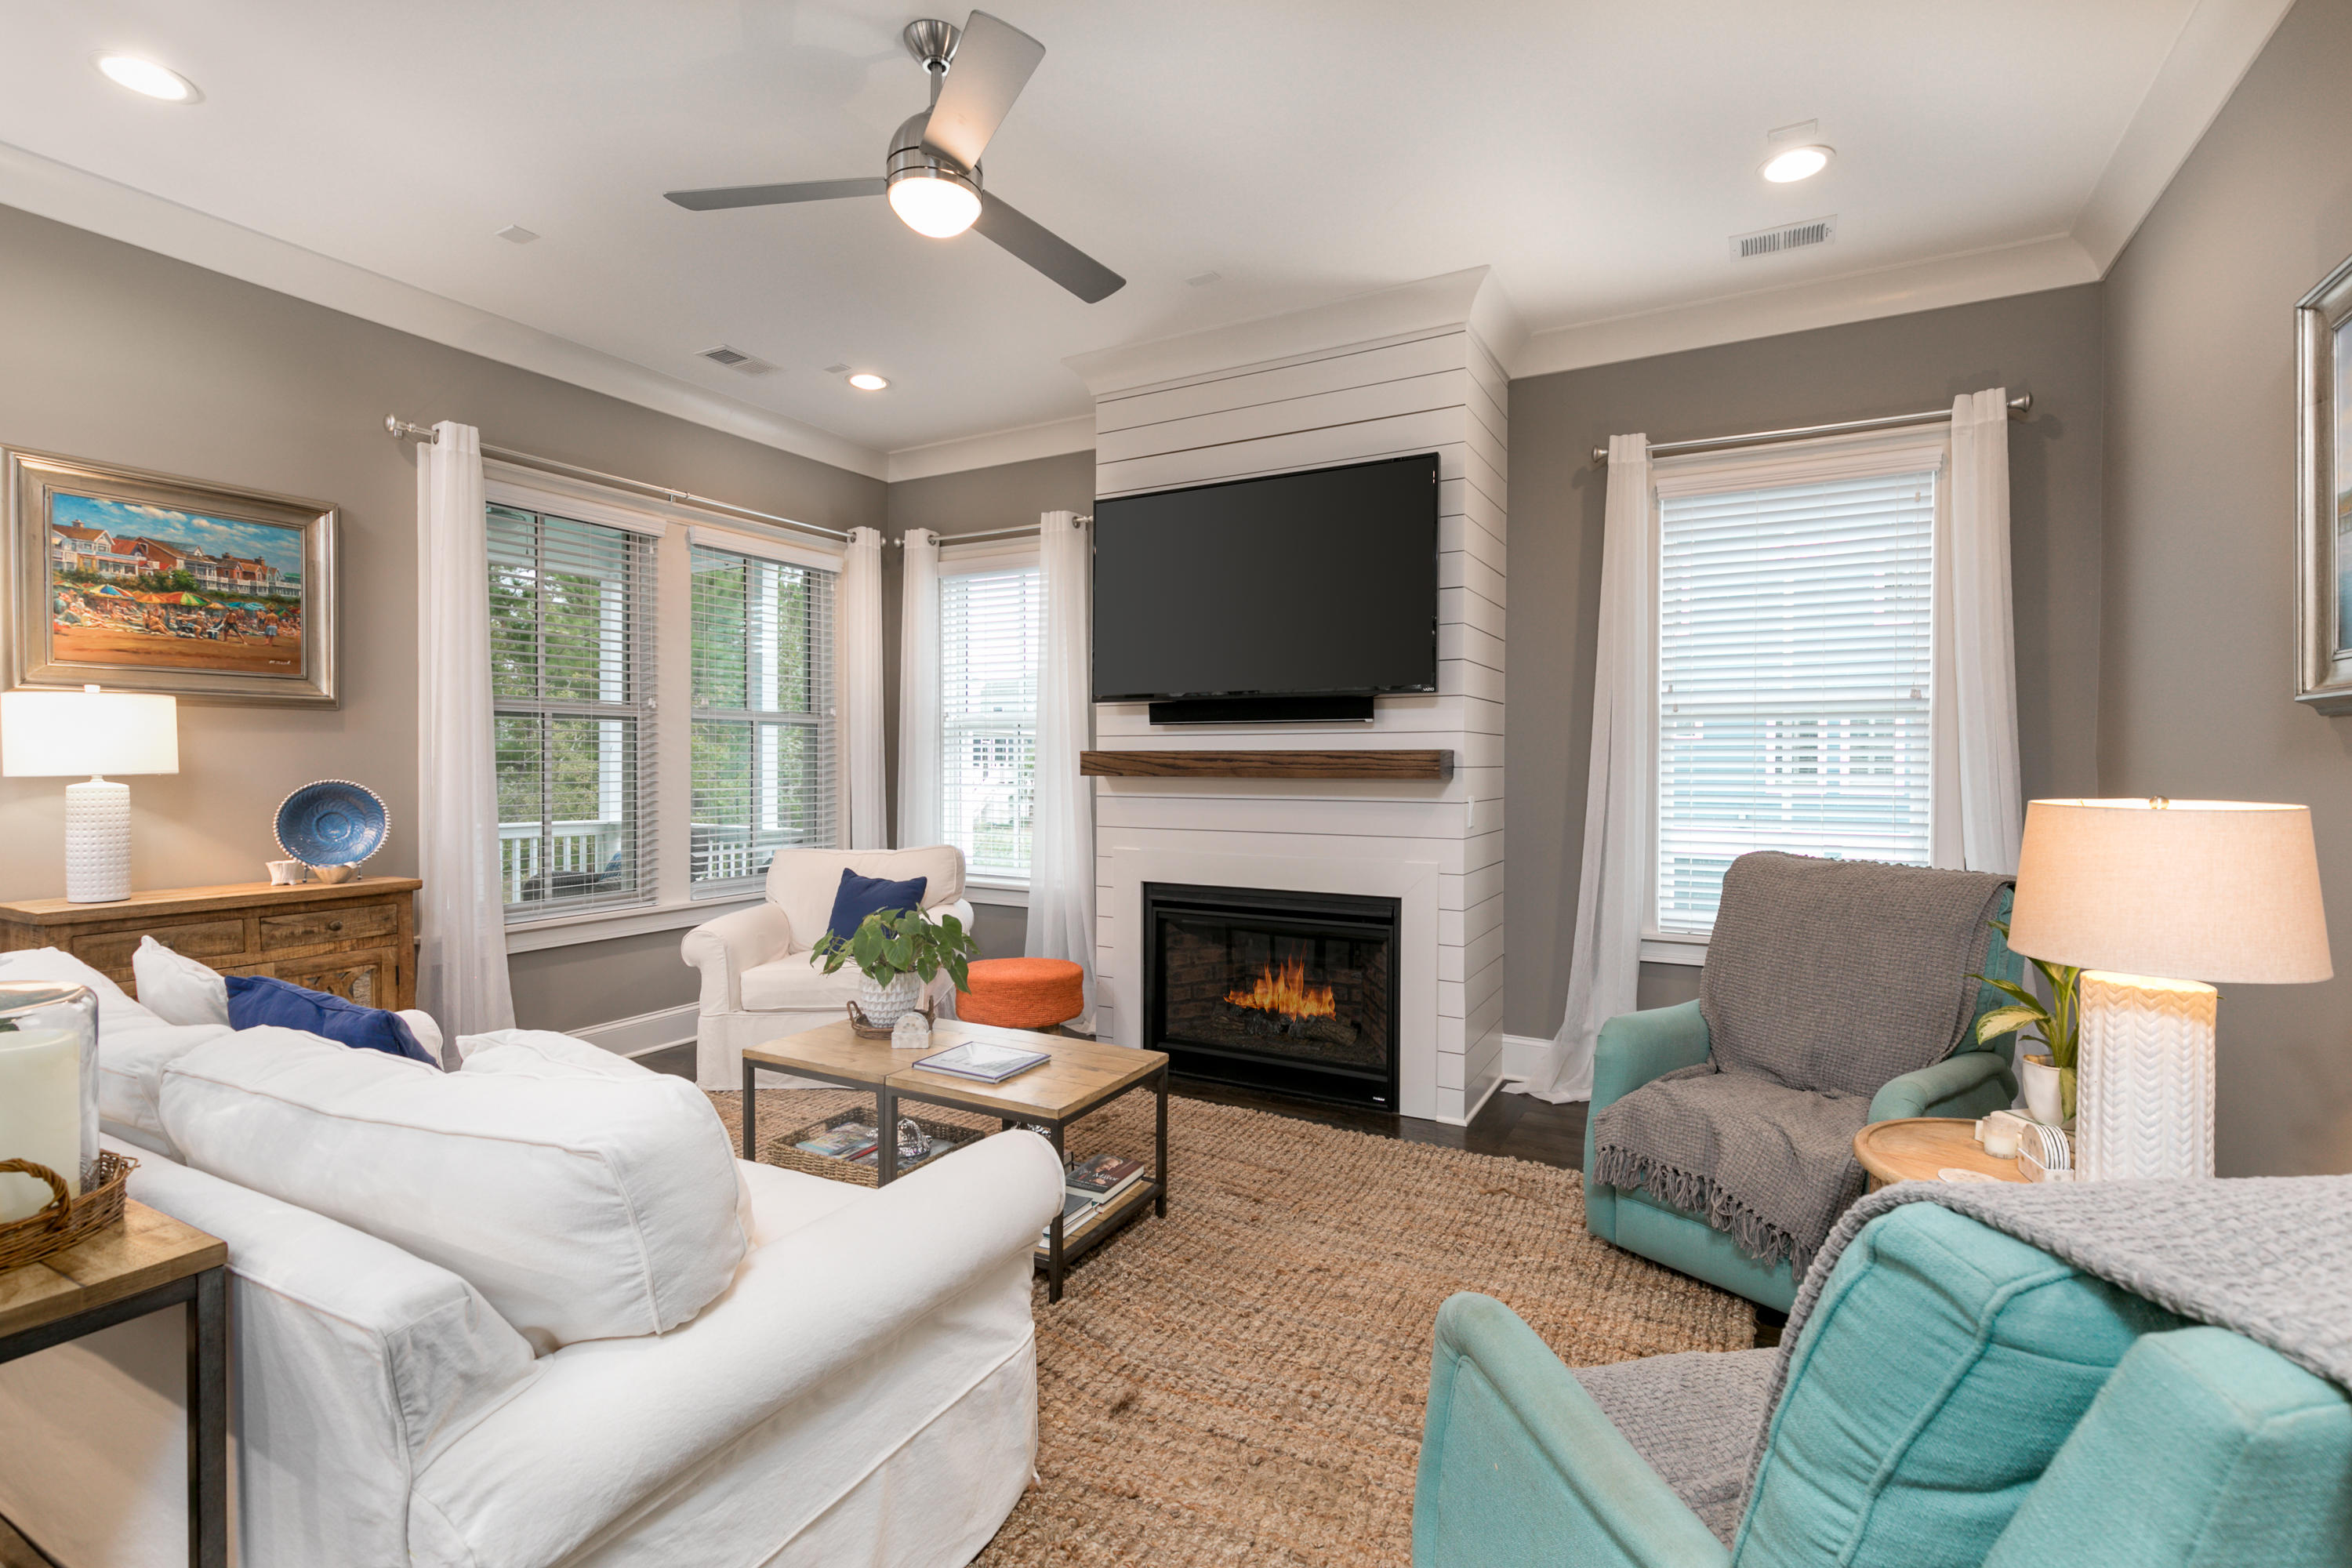 Rivertowne Country Club Homes For Sale - 1548 Rivertowne Country Club, Mount Pleasant, SC - 5